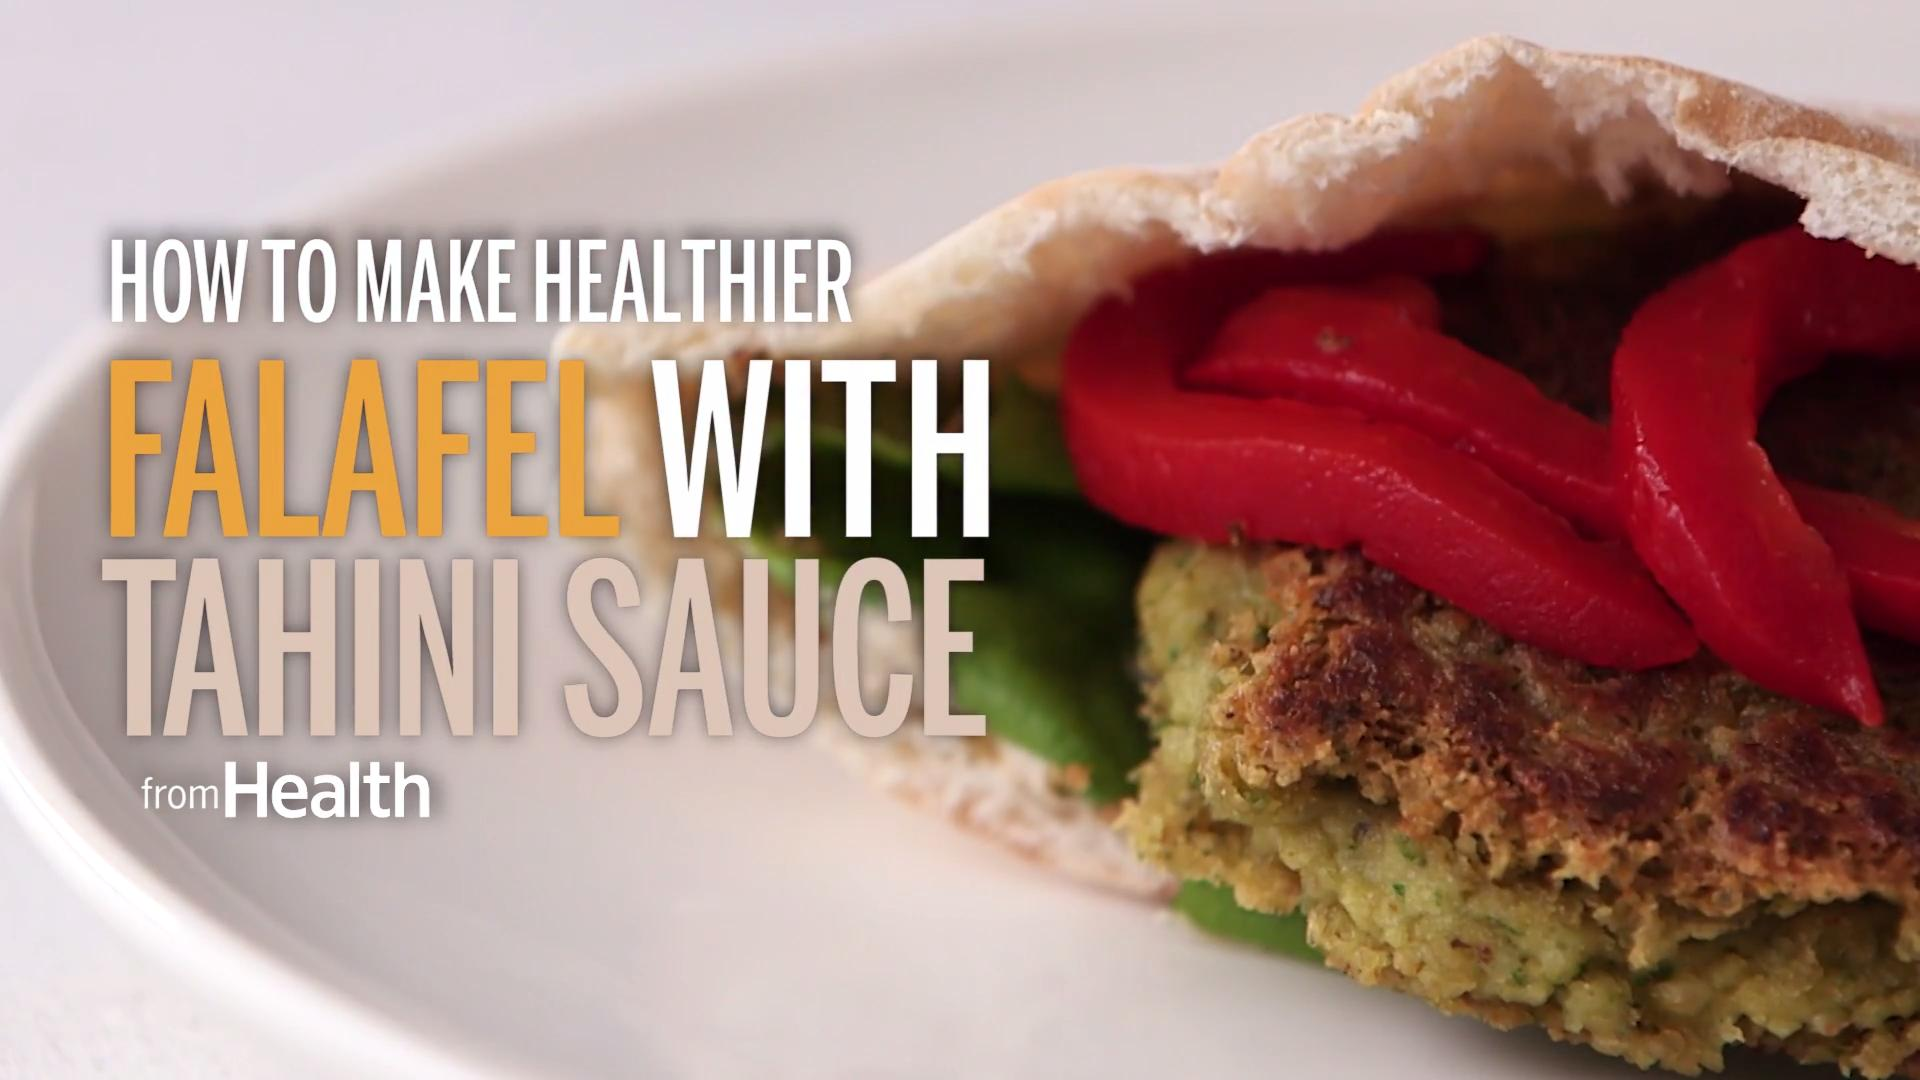 How to Make a Healthier Falafel Pita with Tahini Sauce